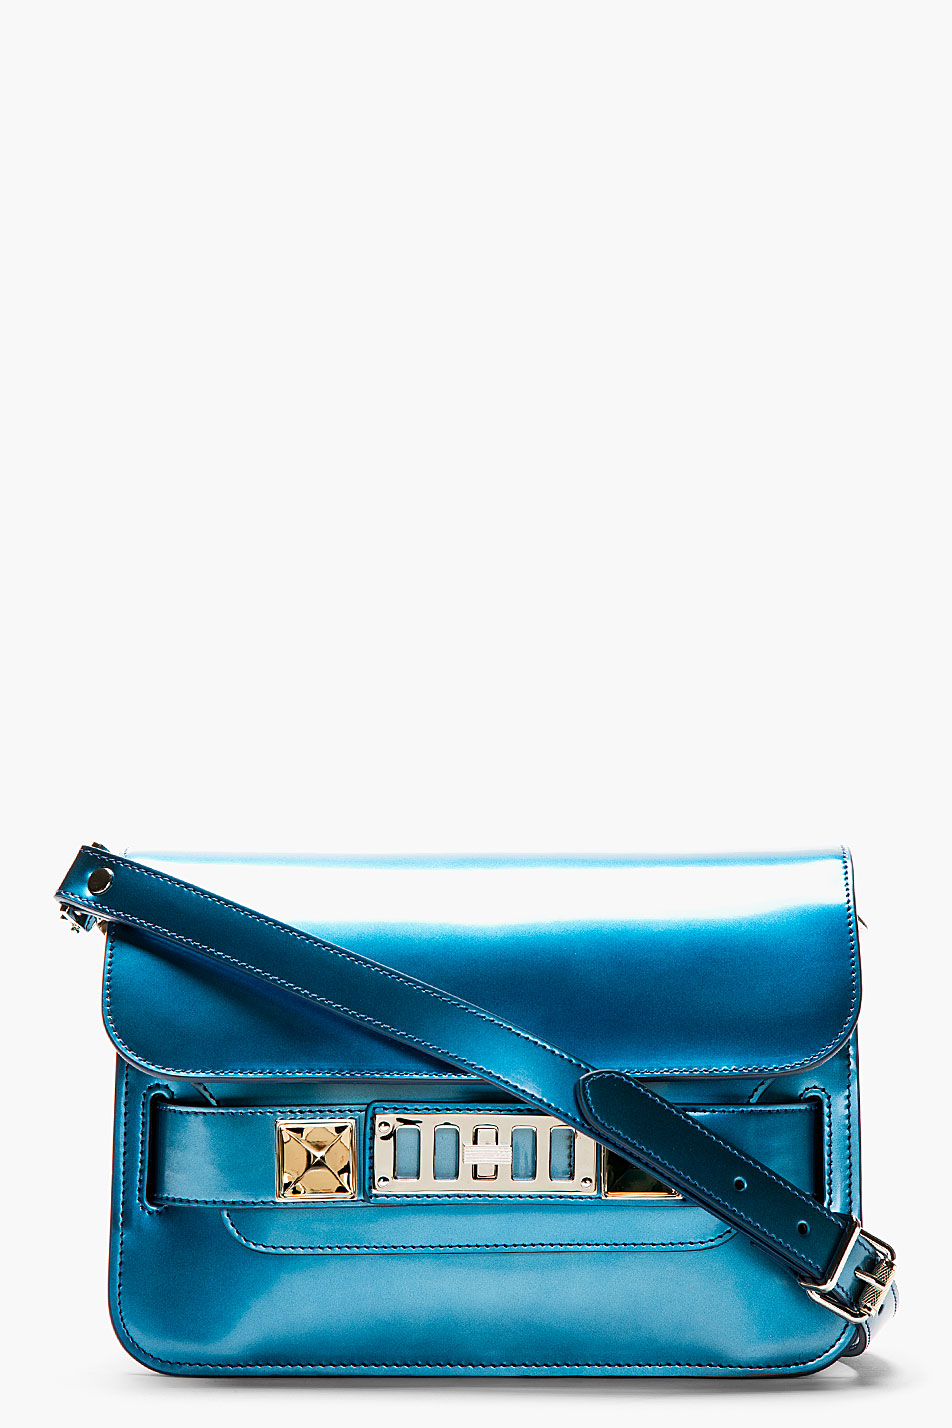 proenza schouler ocean blue ps11 mini shoulder bag